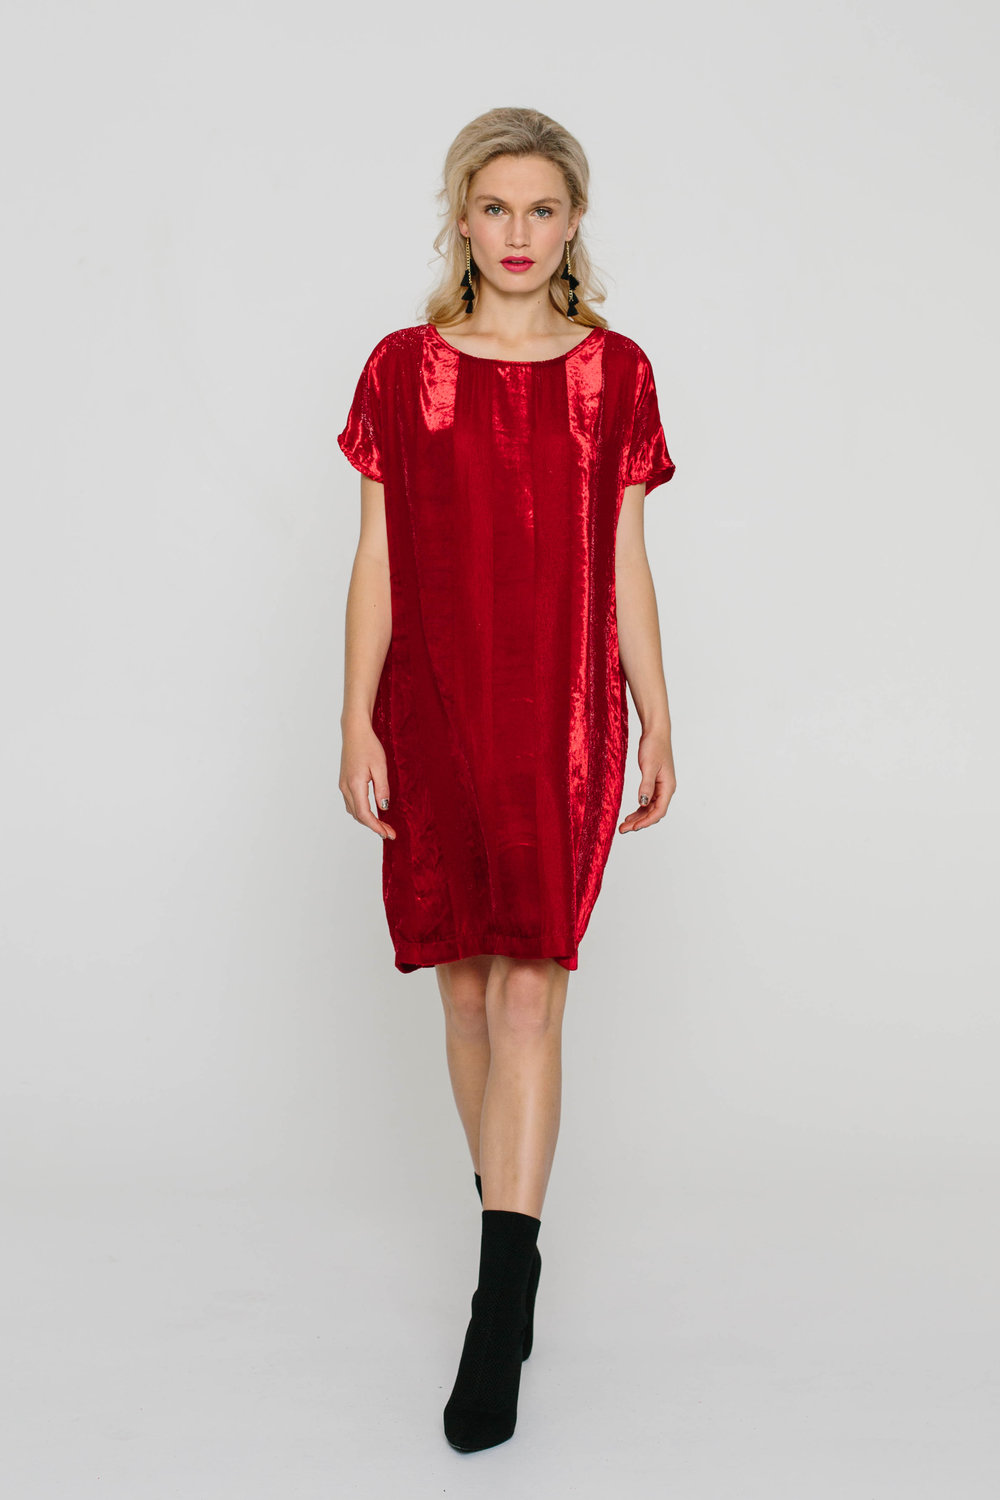 5474WA The Dress Velvet Red